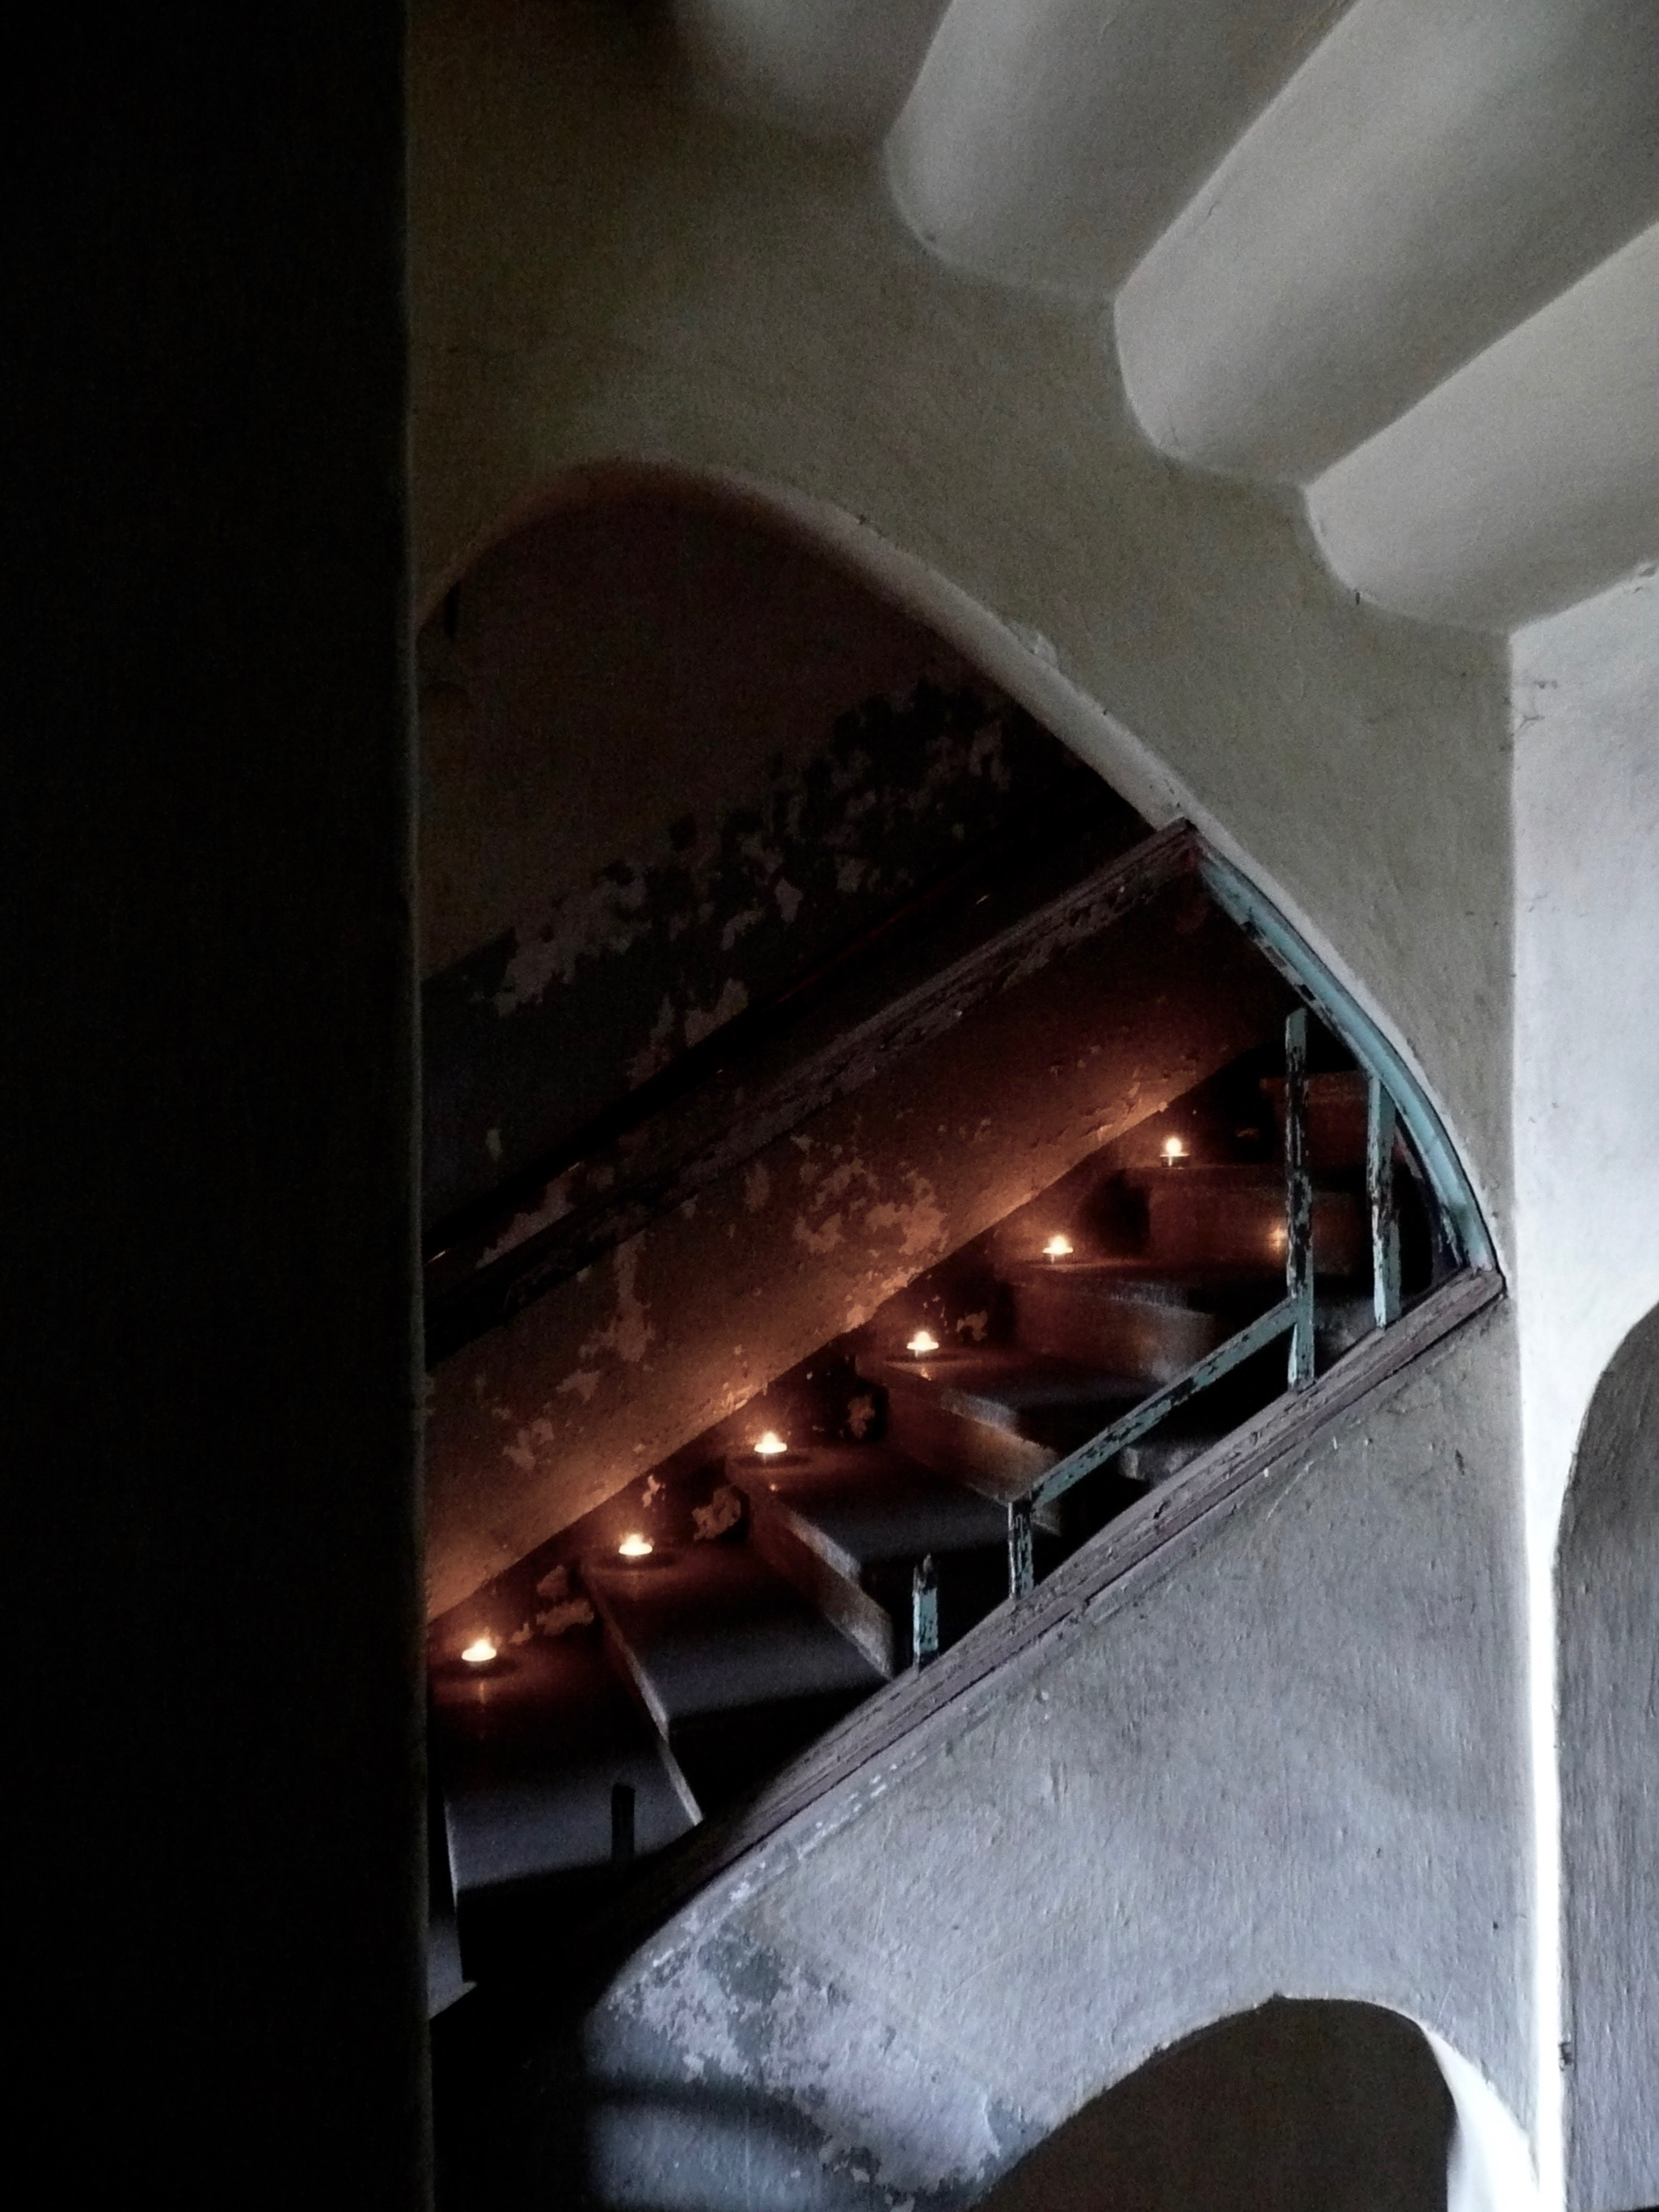 Location Germany Stairs